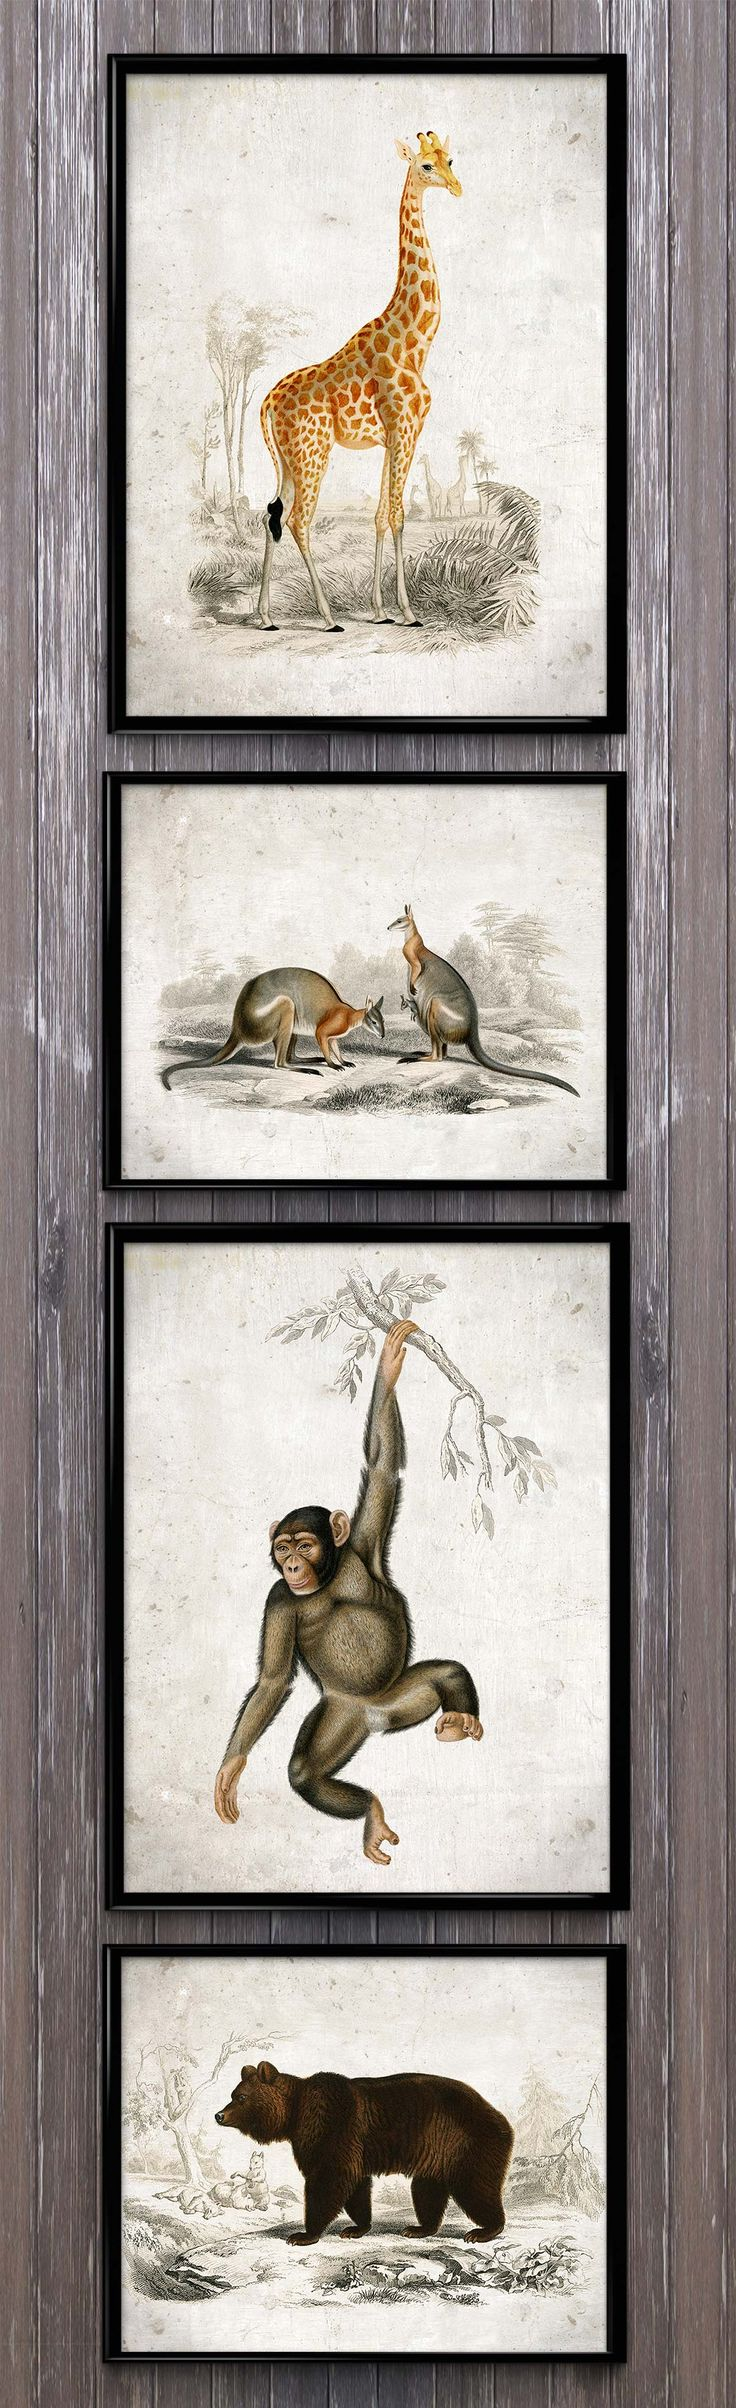 This set of 4 wildlife animals will brighten almost every room!